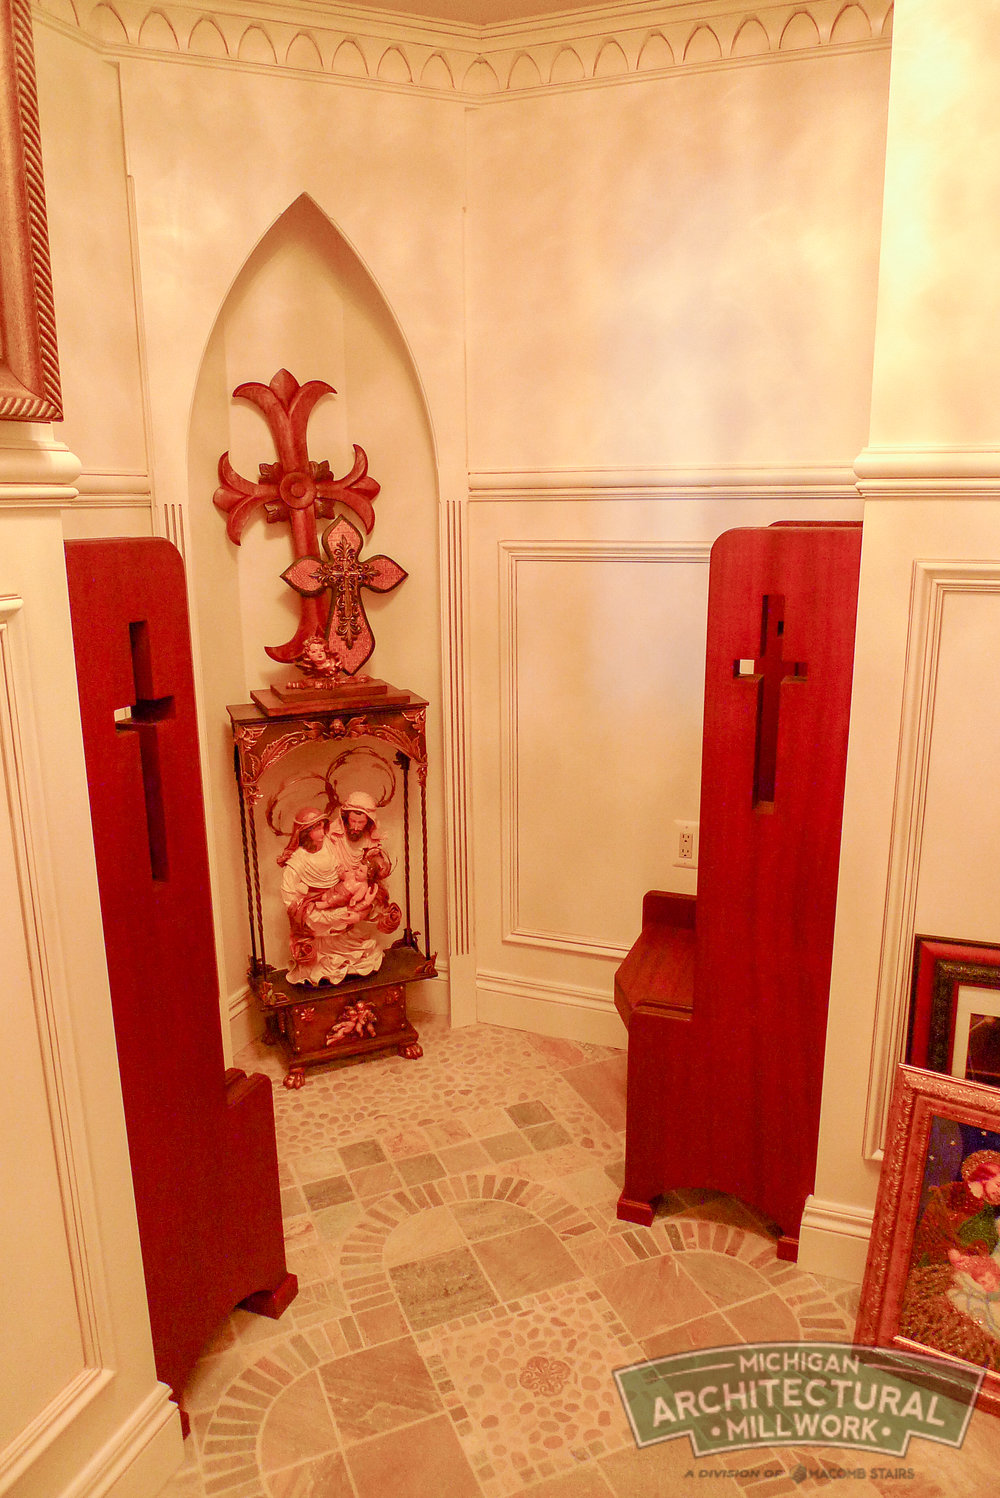 Michigan Architectural Millwork- Moulding and Millwork Photo-164.jpg